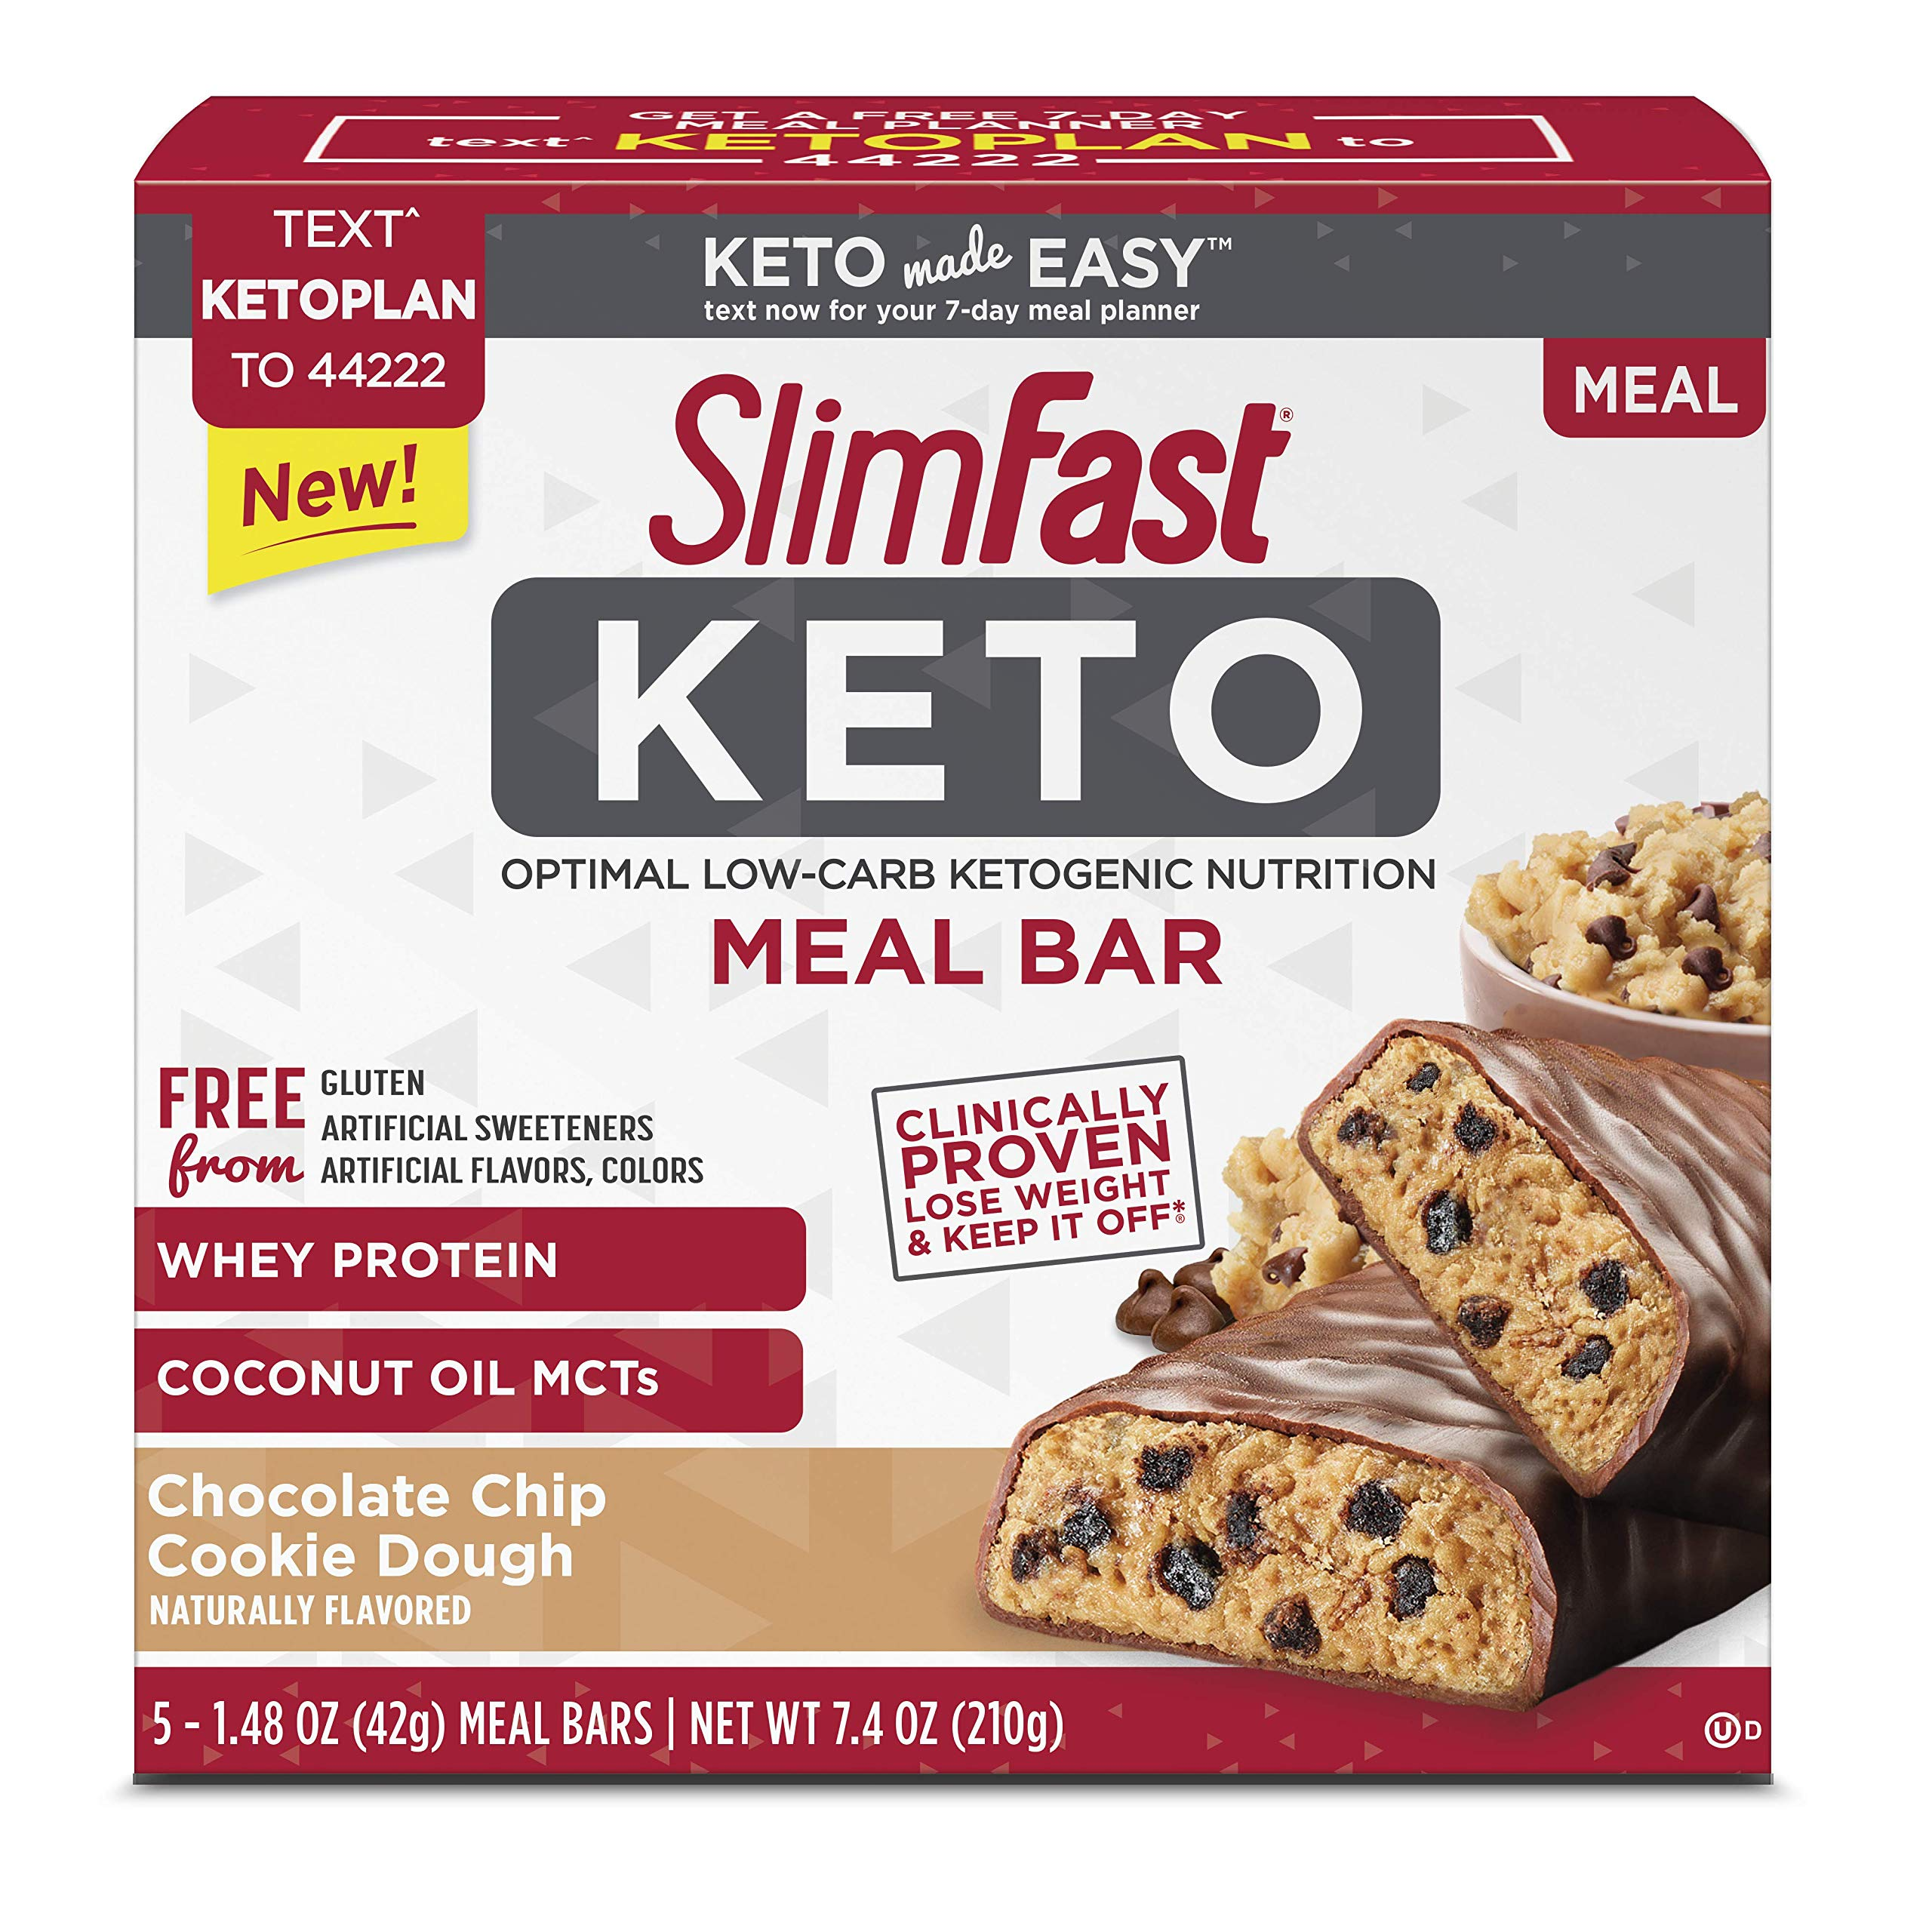 Slimfast Keto Chocolate Chip Cookie Dough Meal Replacement Bar 1.48 Ounce, 5 Bars per Box (4 Boxes) by Slimfast Keto